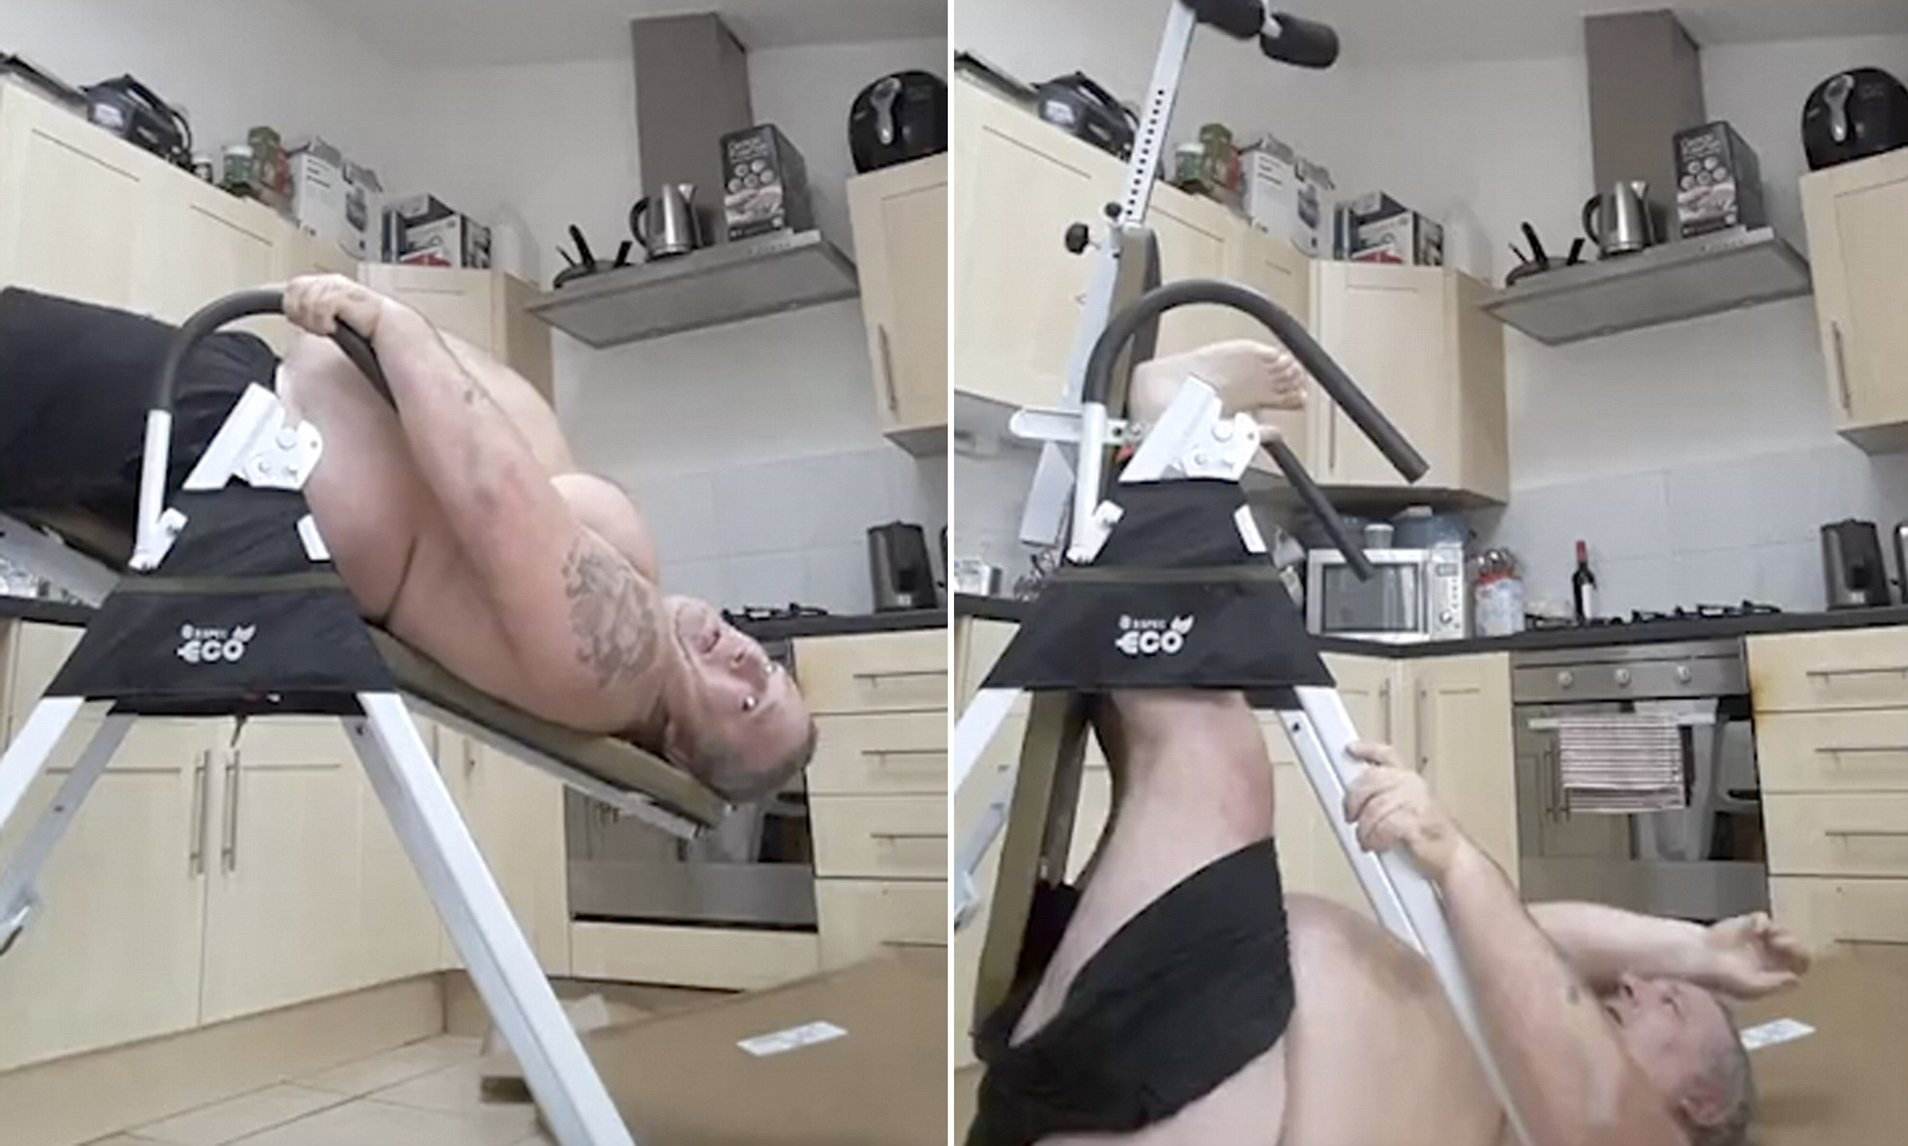 Nude women on inversion tables